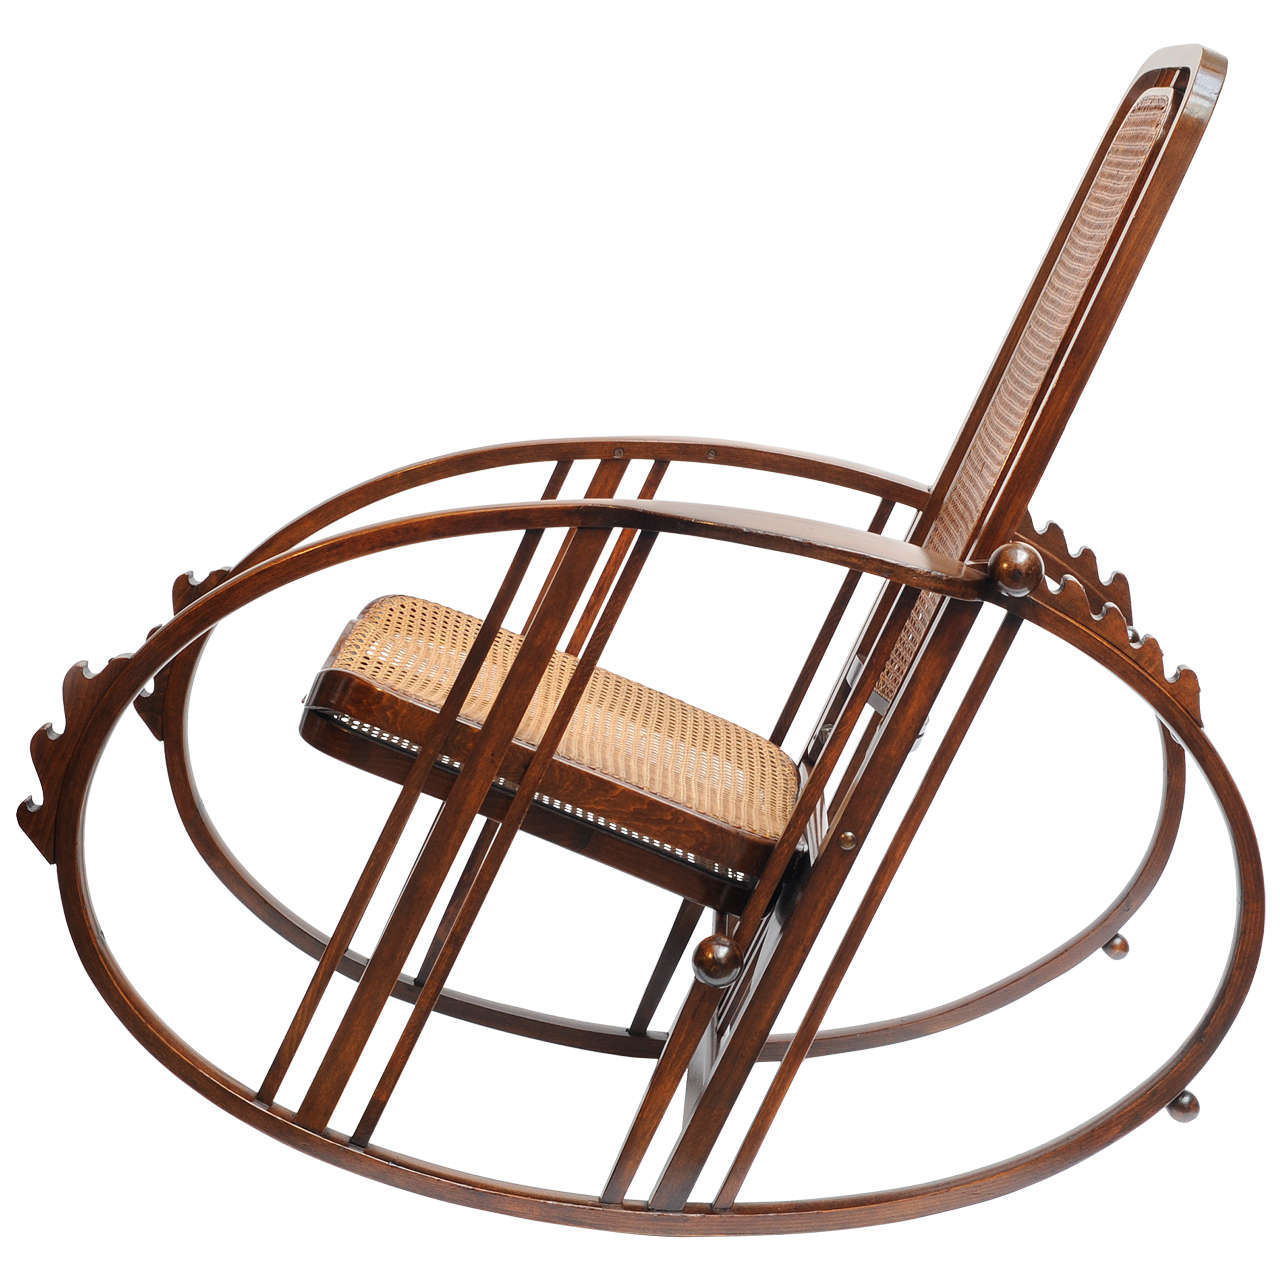 Rocking Chair with footrest by Antonio Volpe